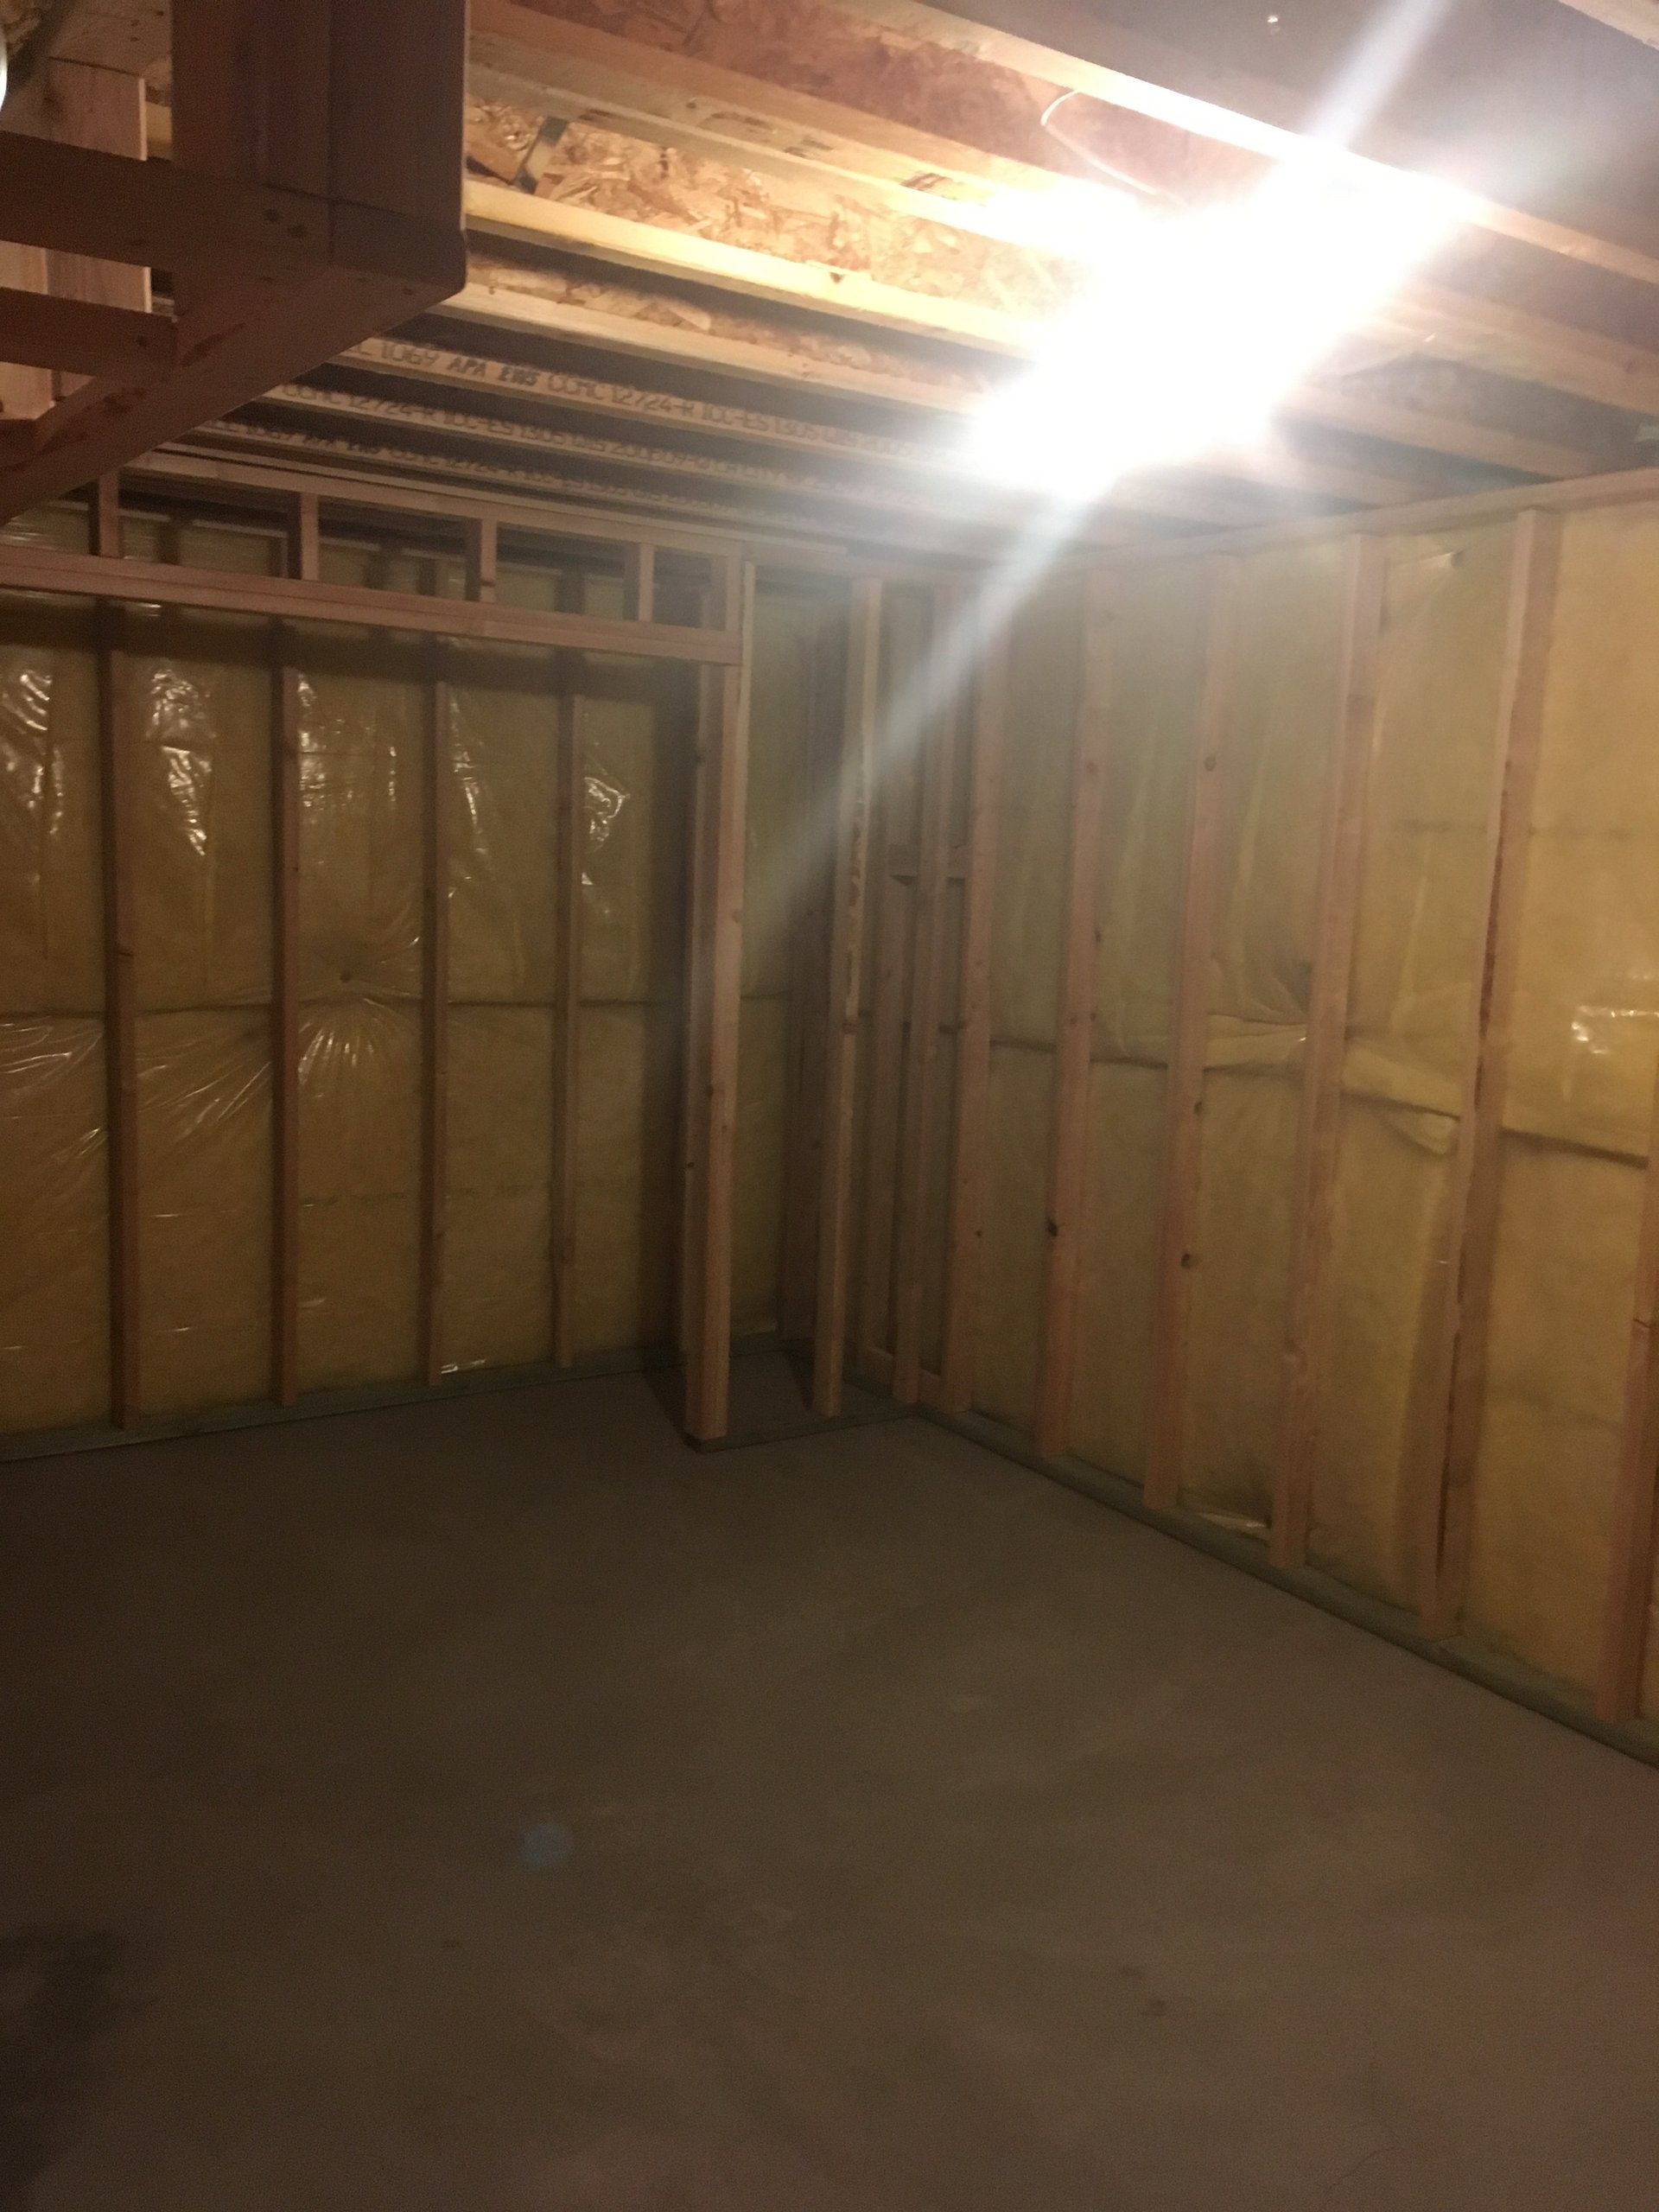 16x10 Basement self storage unit